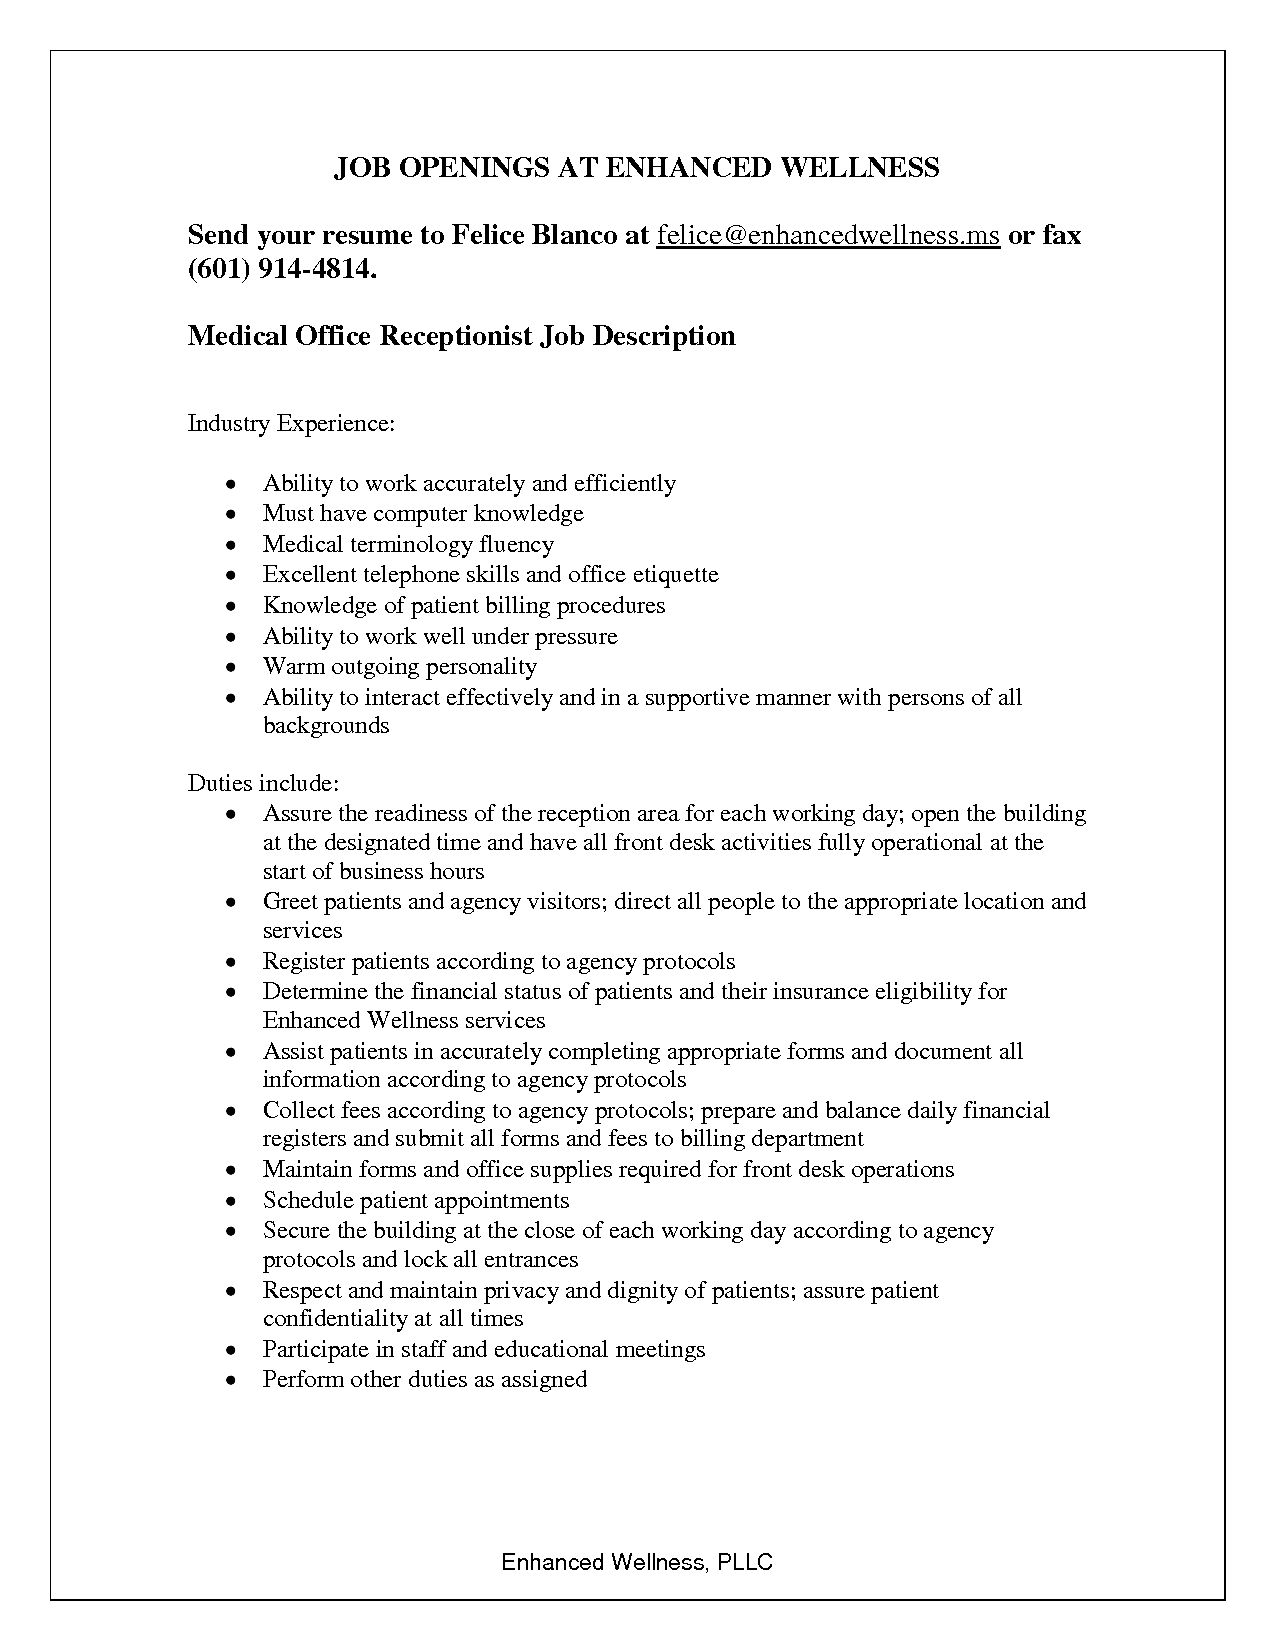 Medical Assistant Receptionist Resume Job Opening Resume For Ofice Receptionist Job Description